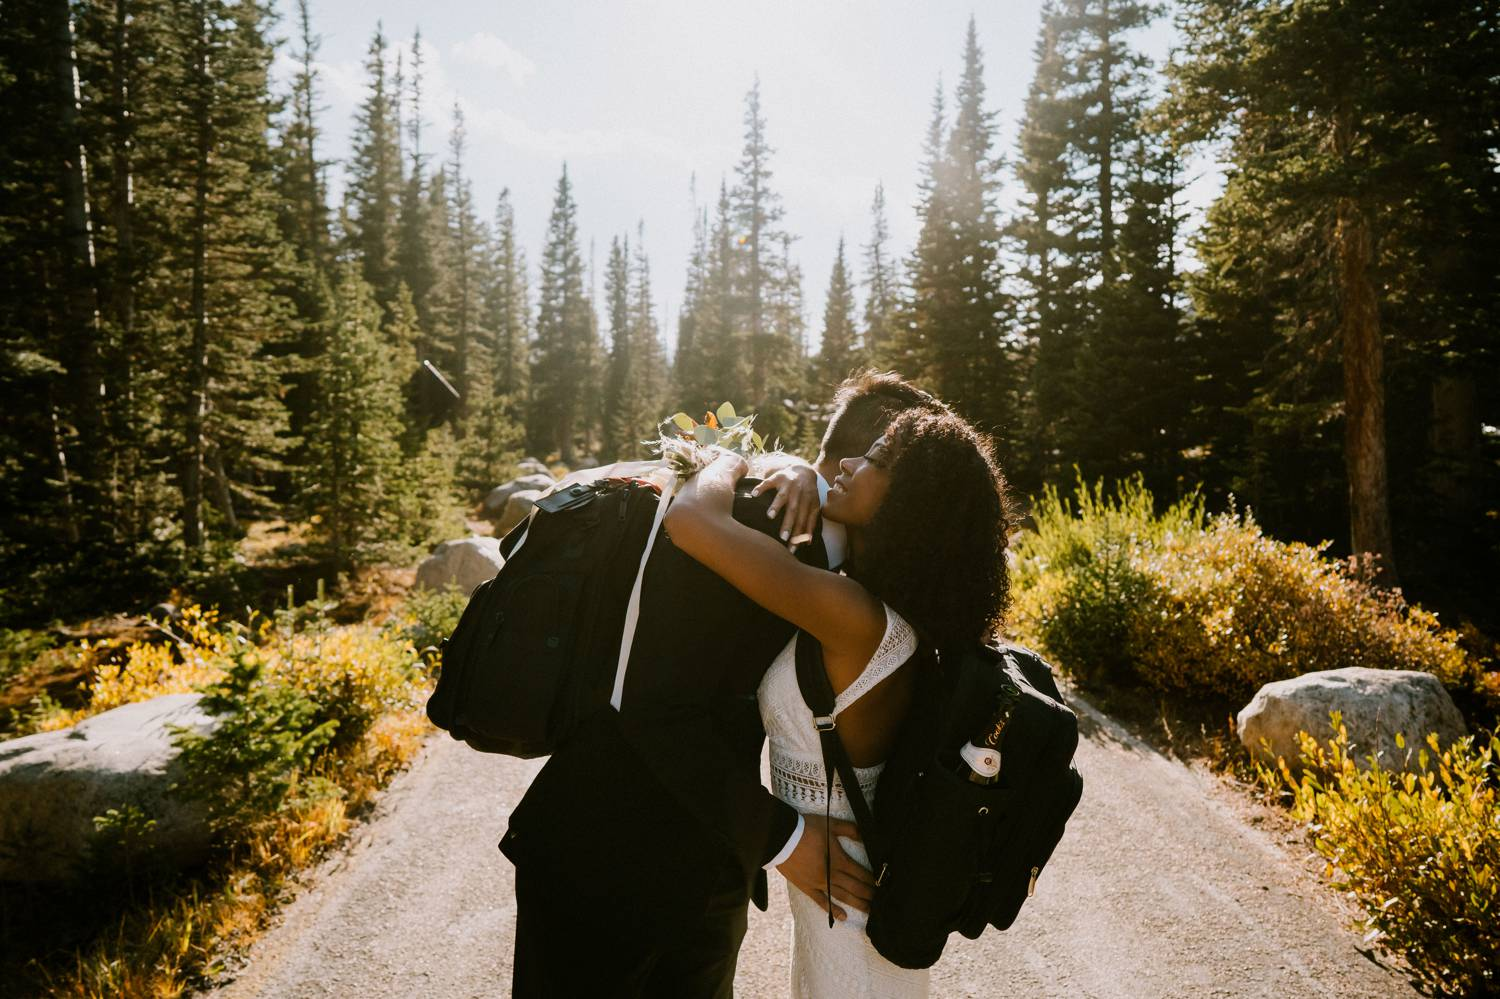 Customer Loyalty: By Nick Sparks, a bride and groom wearing backpacks hug in the middle of a mountain road with evergreens soaring behind them.